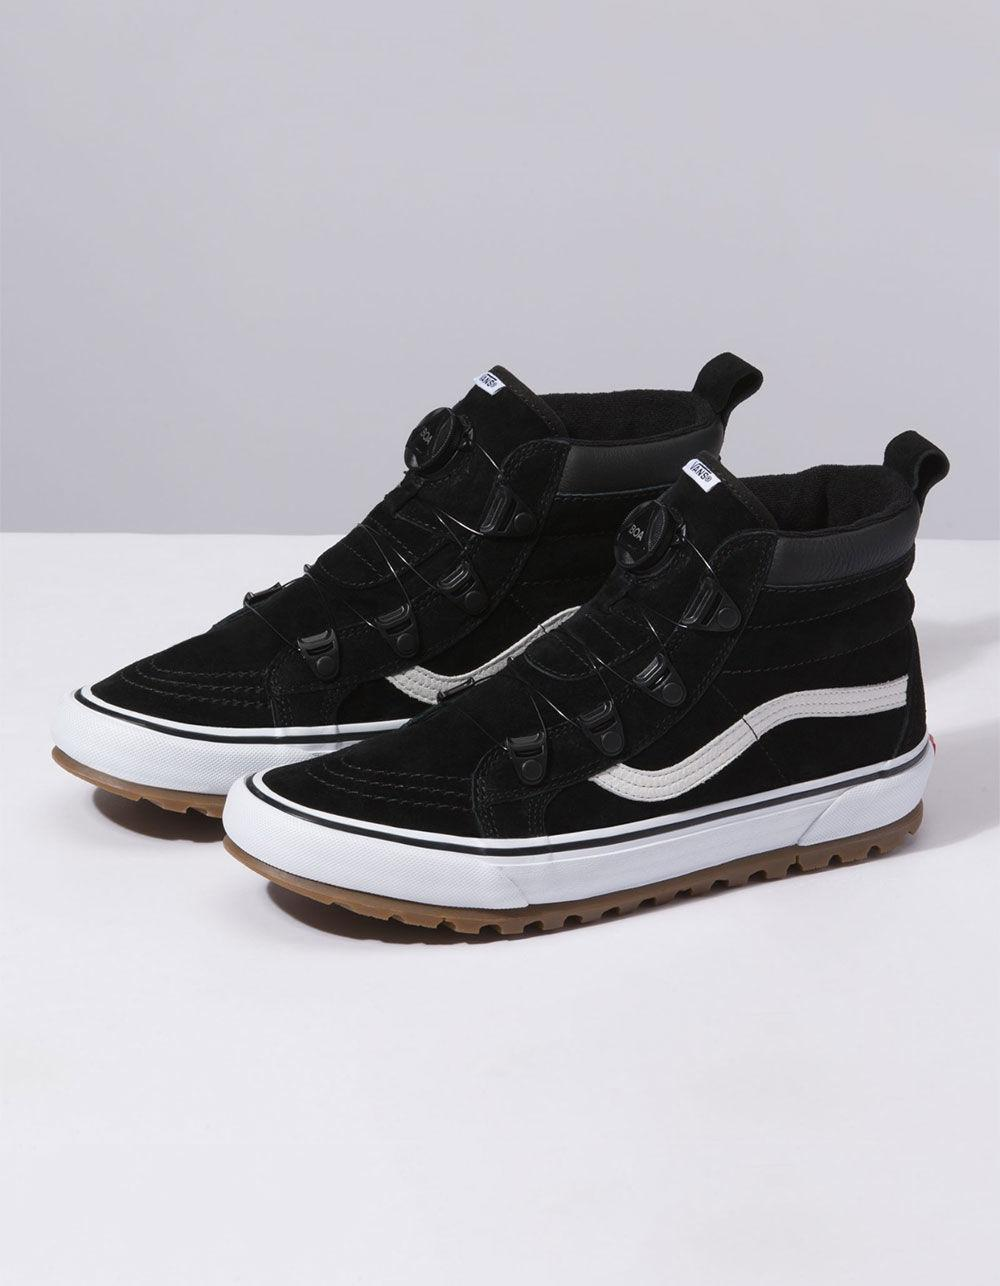 Lyst - Vans Sk8-hi Mte Boa Black   True White Shoes in Black for Men e941c4cee